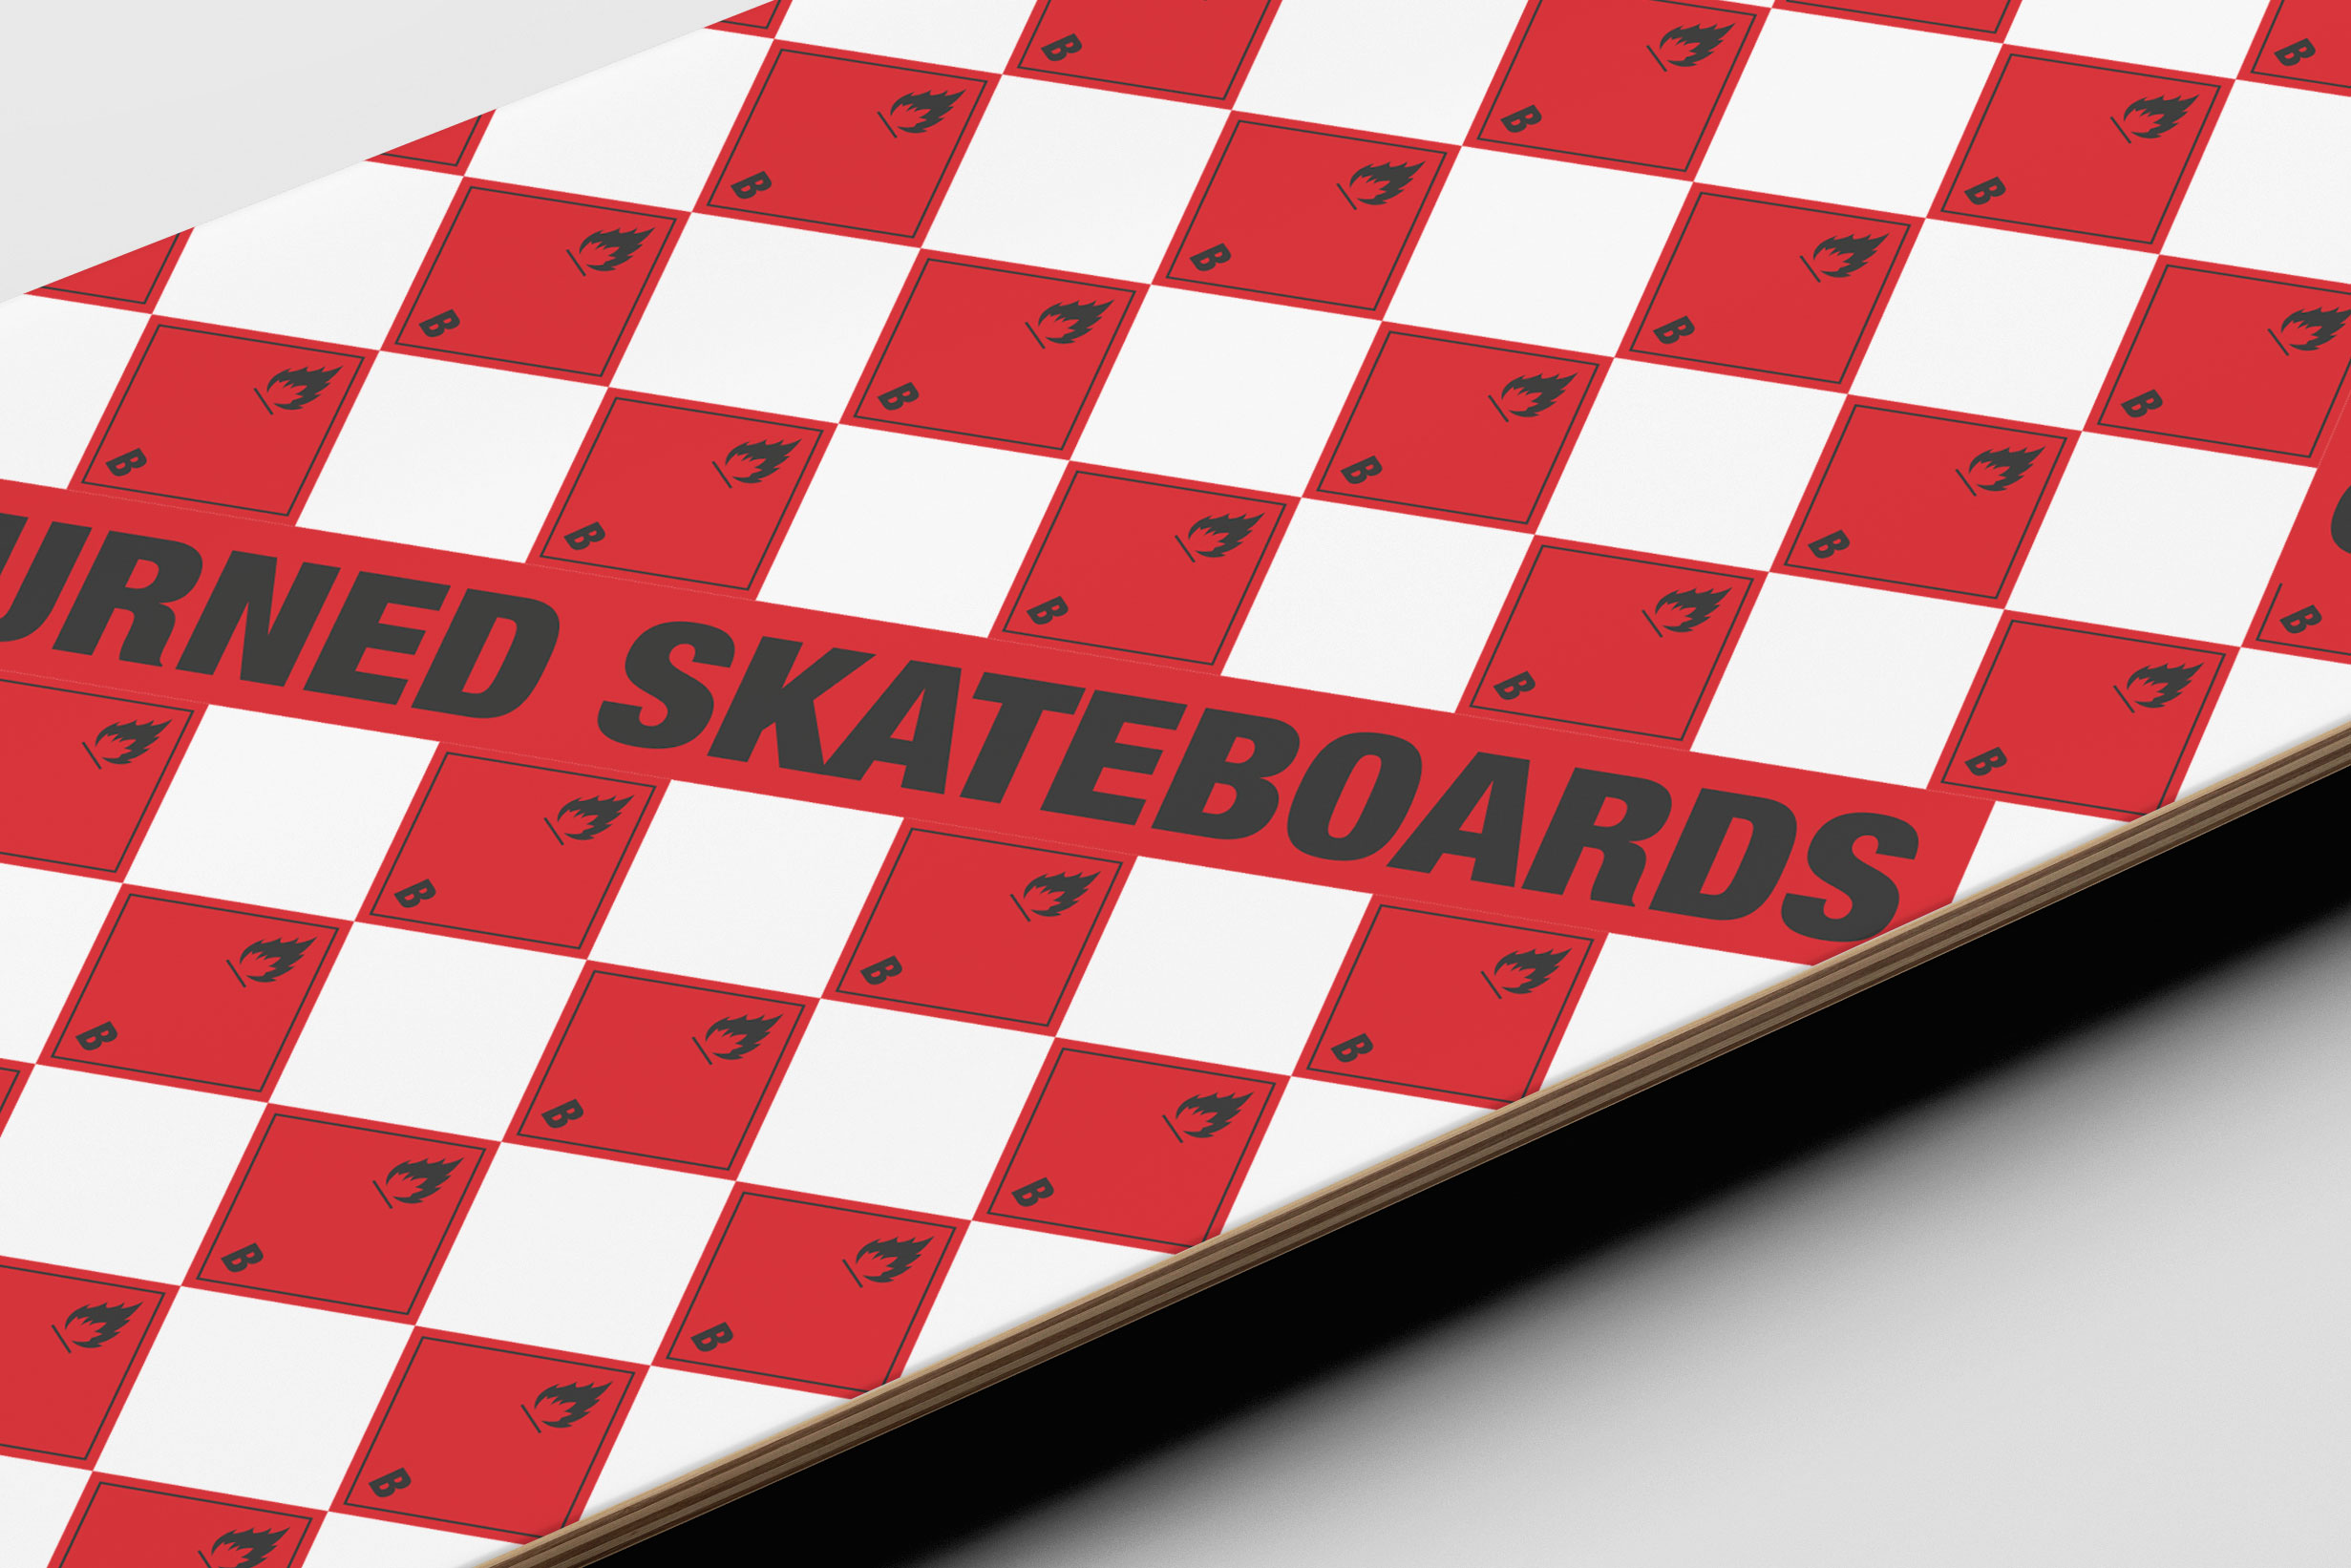 4_decks_design_graphic_burnded_skate